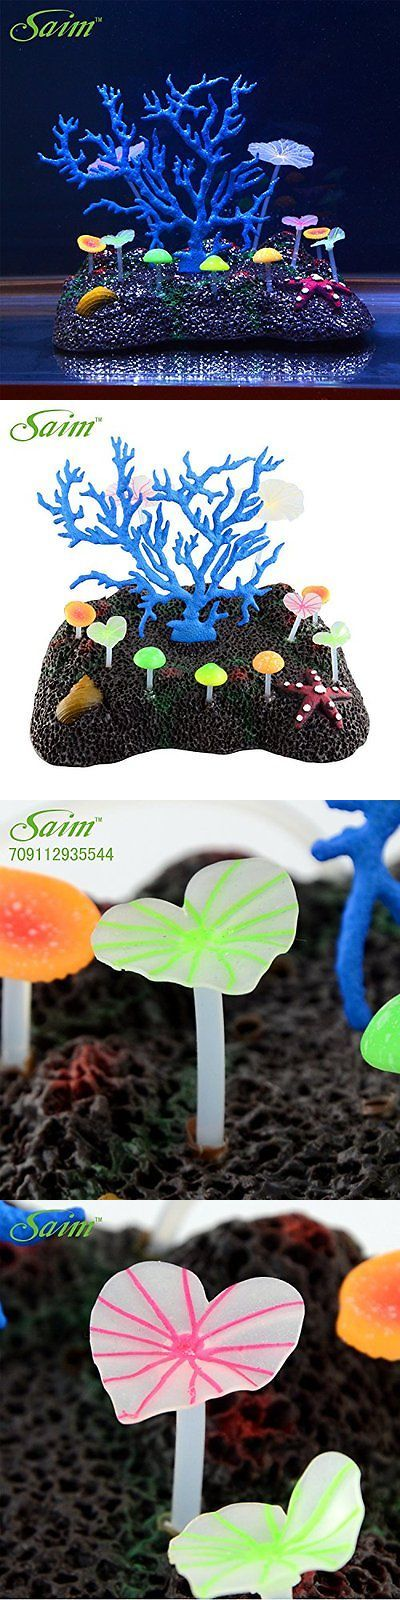 Animals Fish And Aquariums: Saim Glowing Effect Artificial Coral For Fish Tank Decorative Aquarium Sale BUY IT NOW ONLY: $32.33